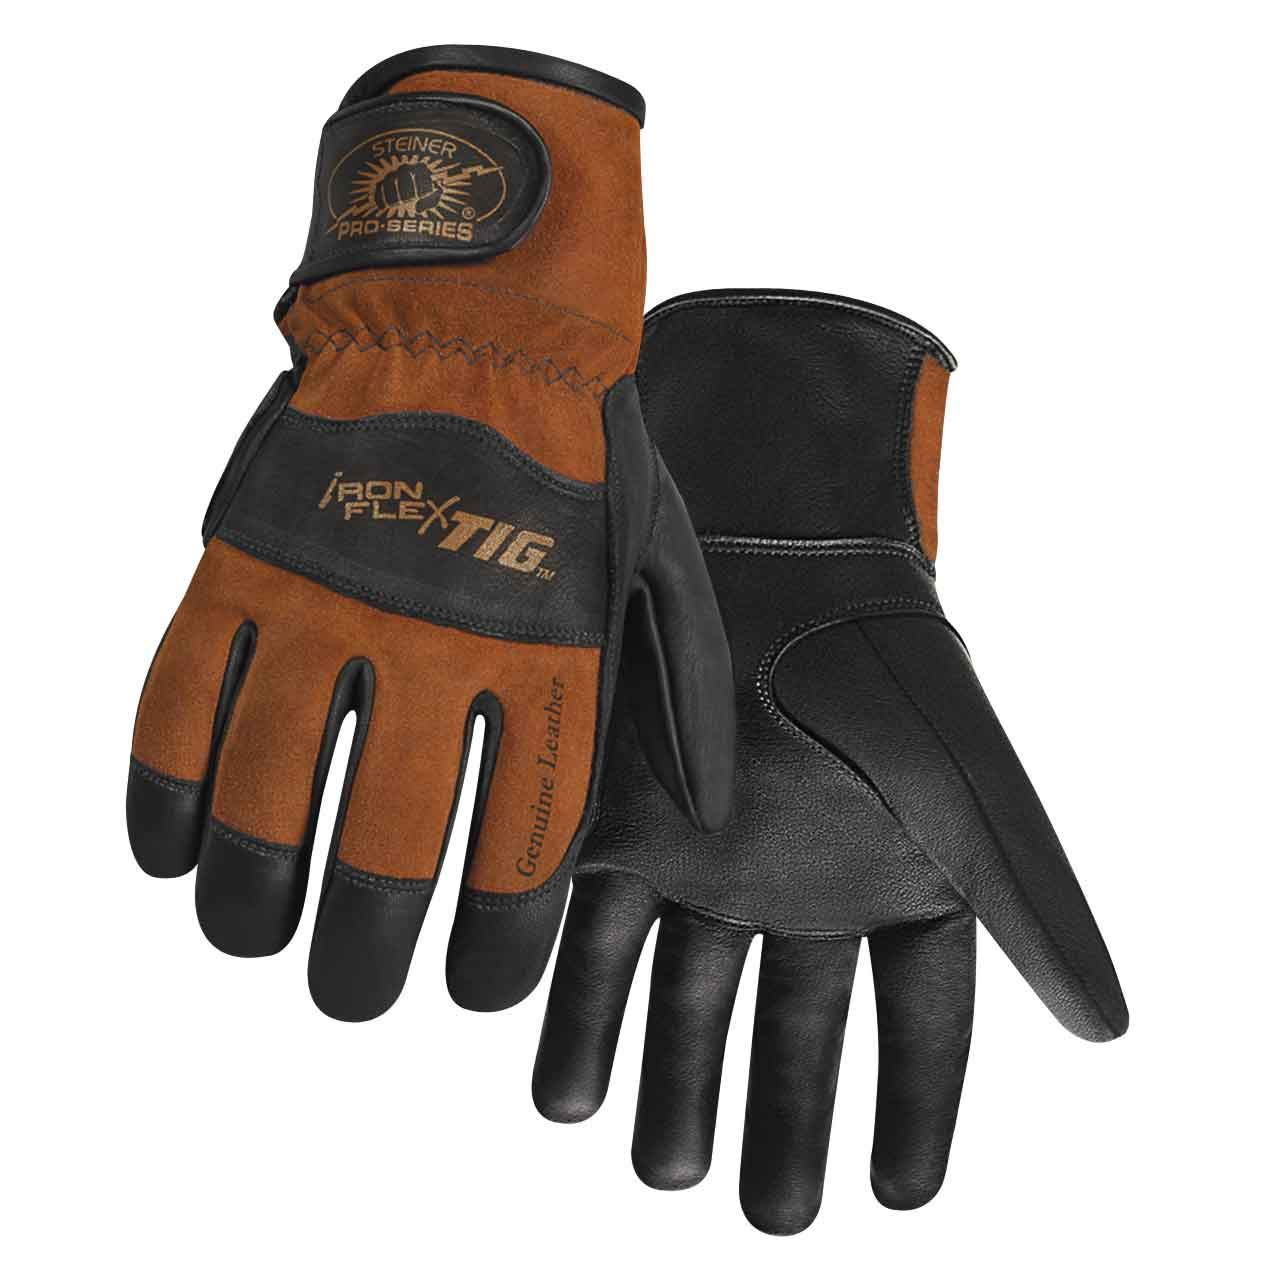 Steiner 0262-L SPS Ironflex TIG Gloves, Black Premium Grain Kidskin, Brown Reversed Grain Kidskin Back, Adjustable, Large by Steiner